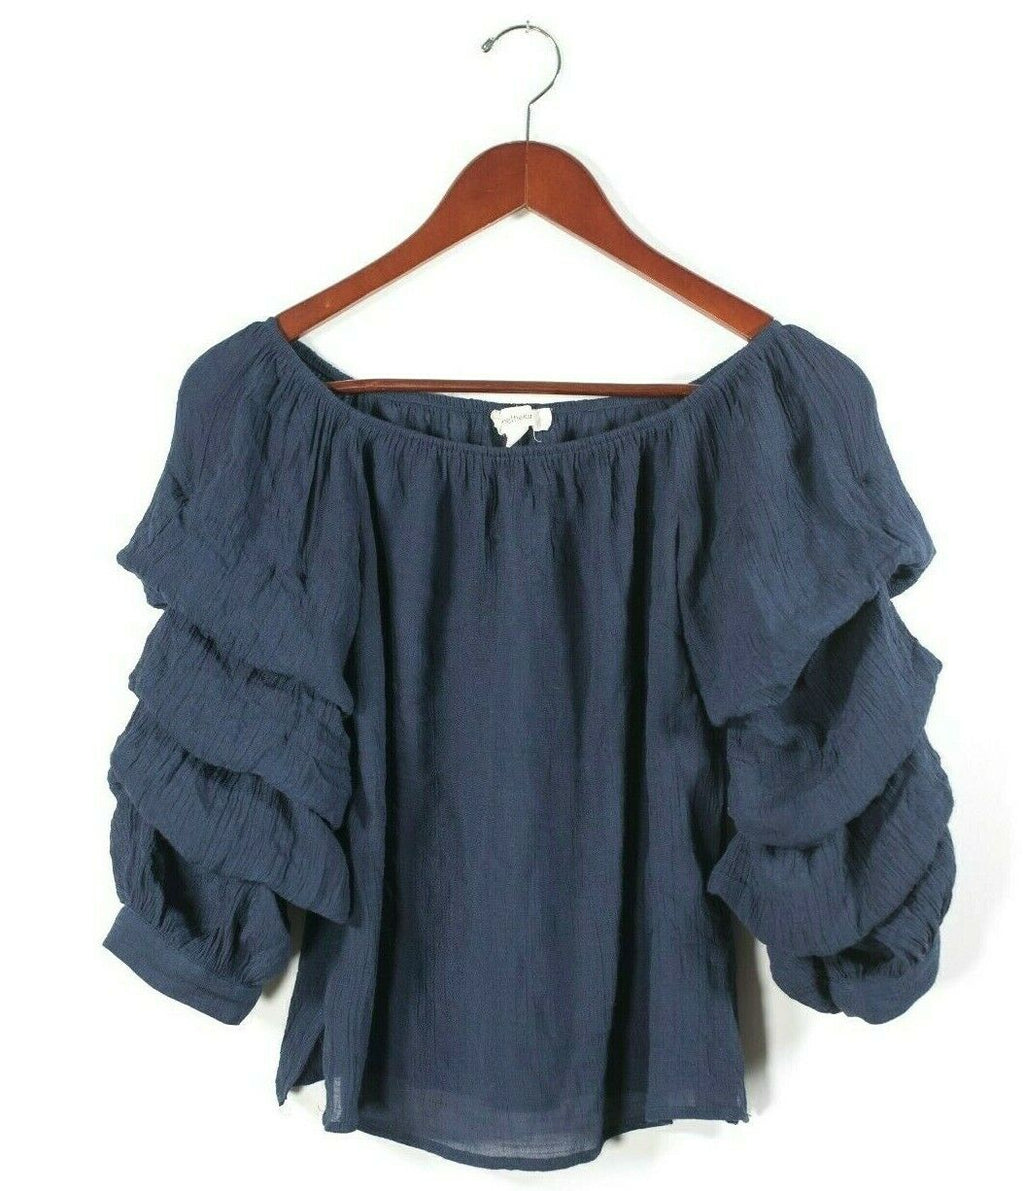 One The Land Womens Small Navy Blue Top Blouse Shirt Peasant Puffy Ruffle Sleeve